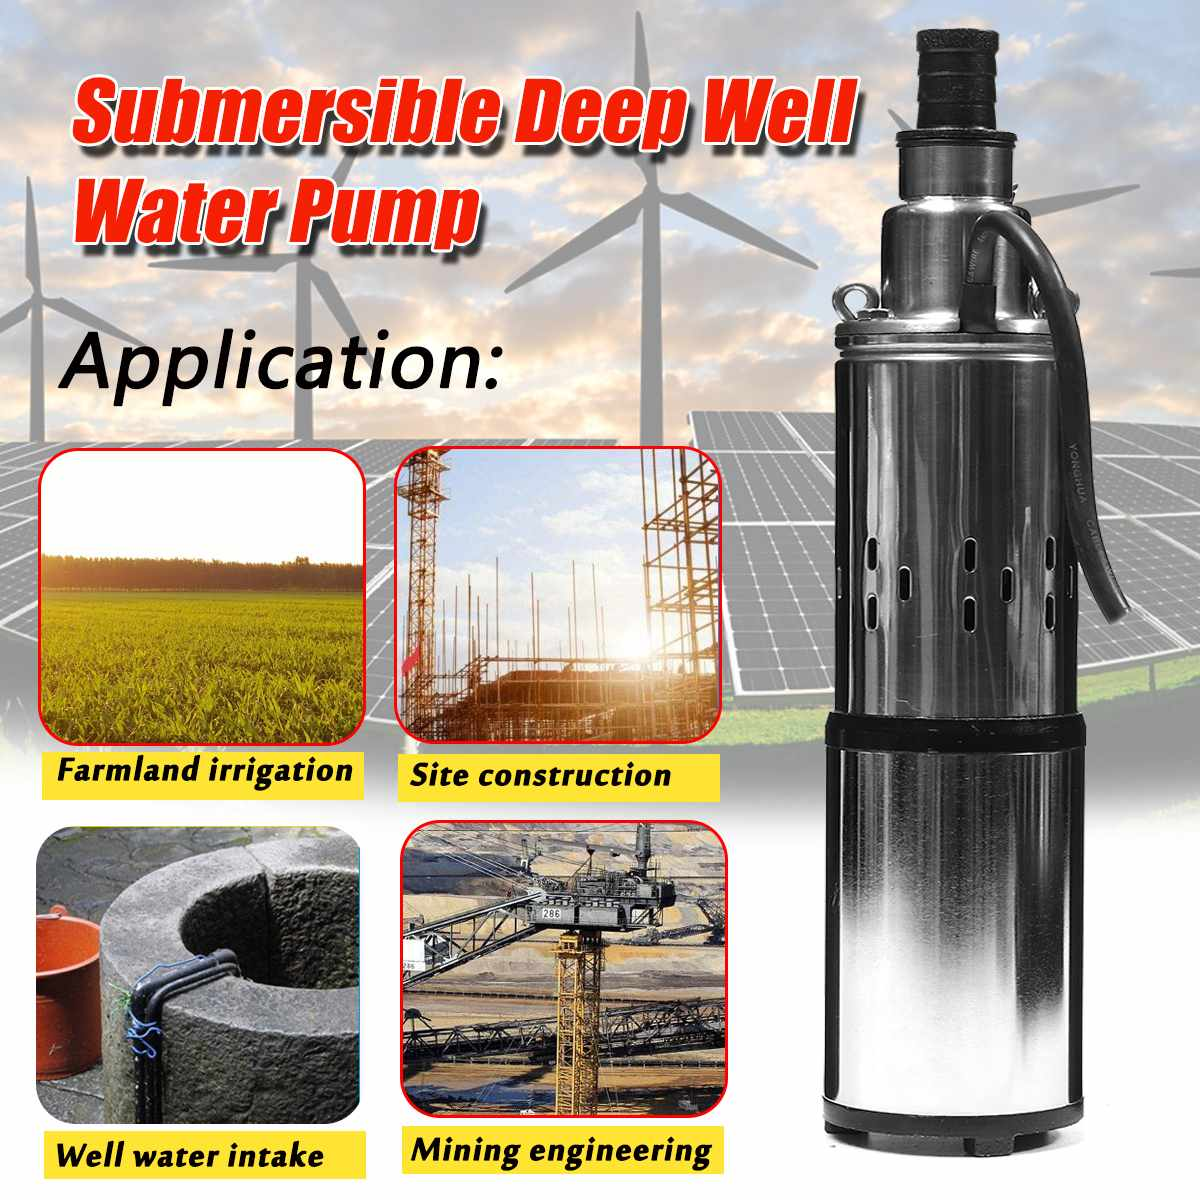 DC 48V 60V Solar Water Pump for Diving Deep Well Screw Submersibles Water Pumps Irrigation Garden Home Agricultural 40mDC 48V 60V Solar Water Pump for Diving Deep Well Screw Submersibles Water Pumps Irrigation Garden Home Agricultural 40m